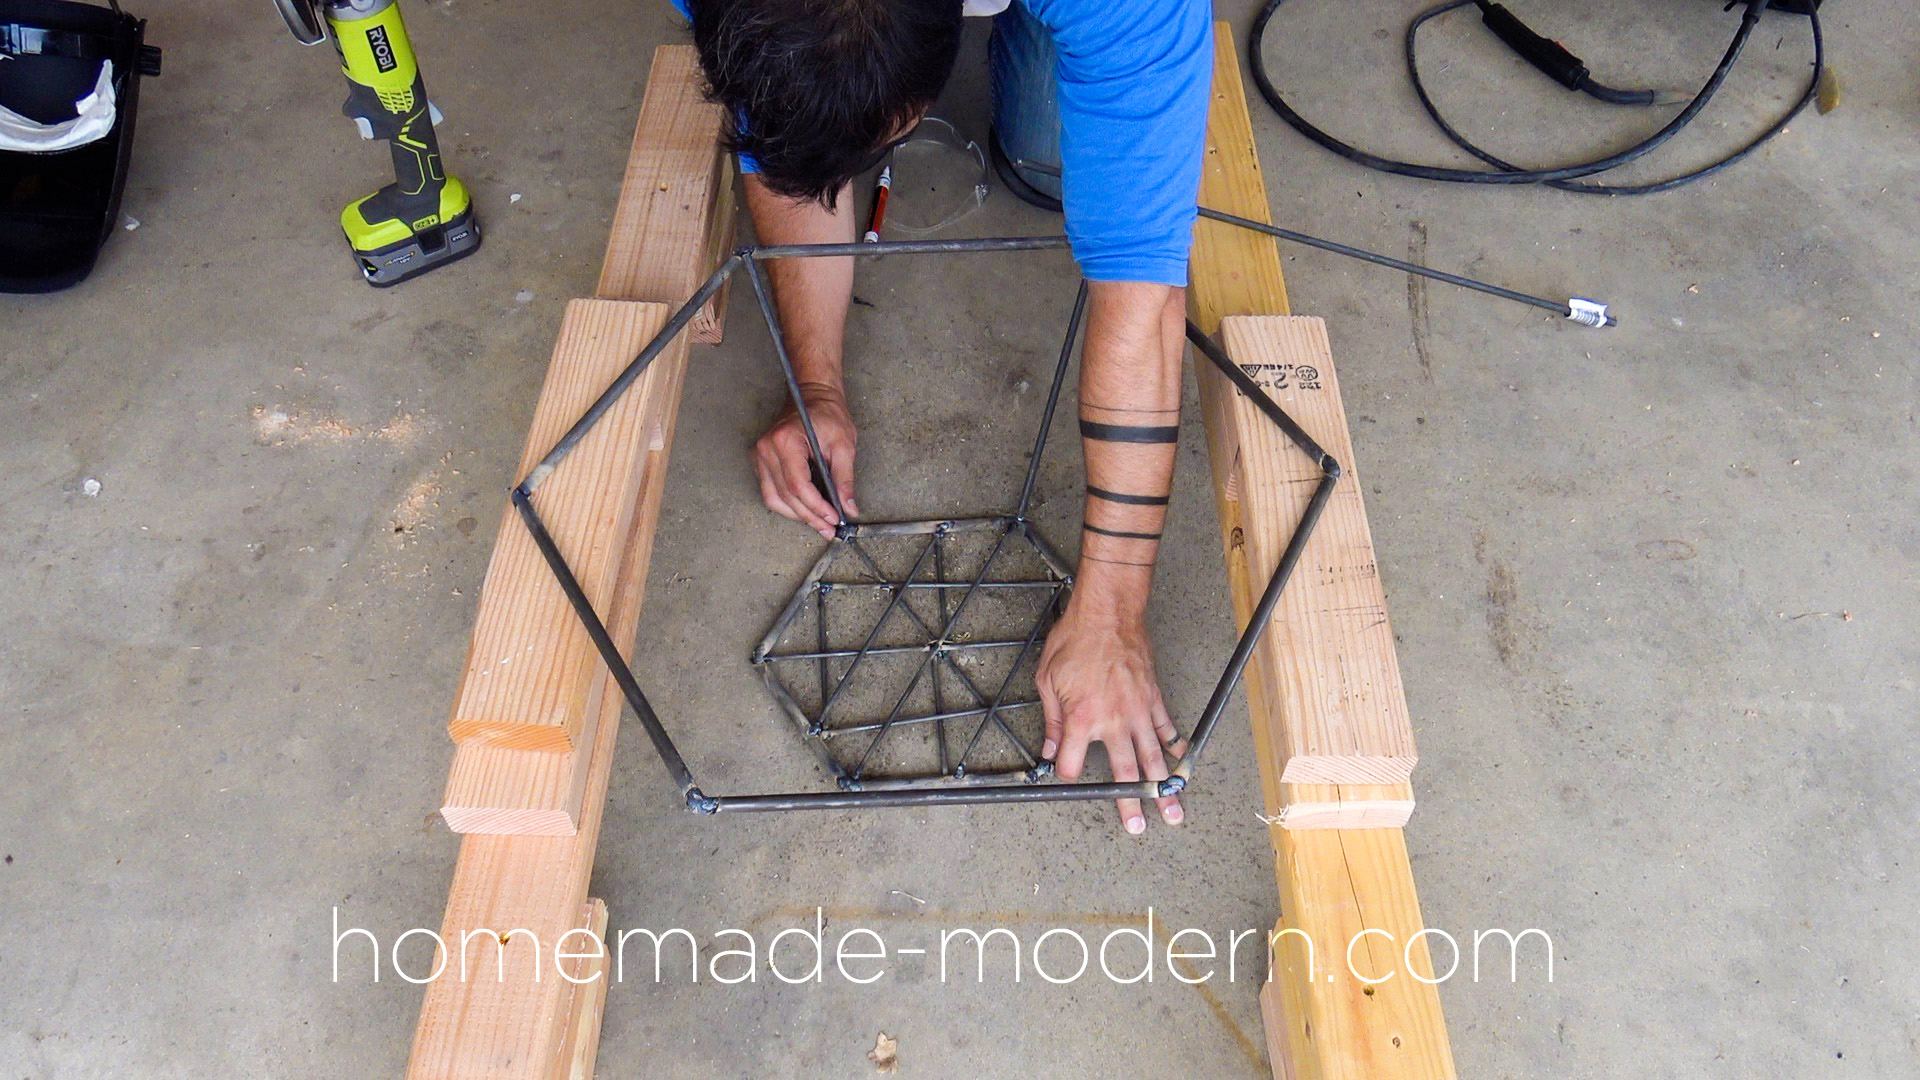 This DIY modern steel fire pit designed by Ben Uyeda is made out of steel rods from Home Depot that are welded together. For more information go to HomeMade-Modern.com